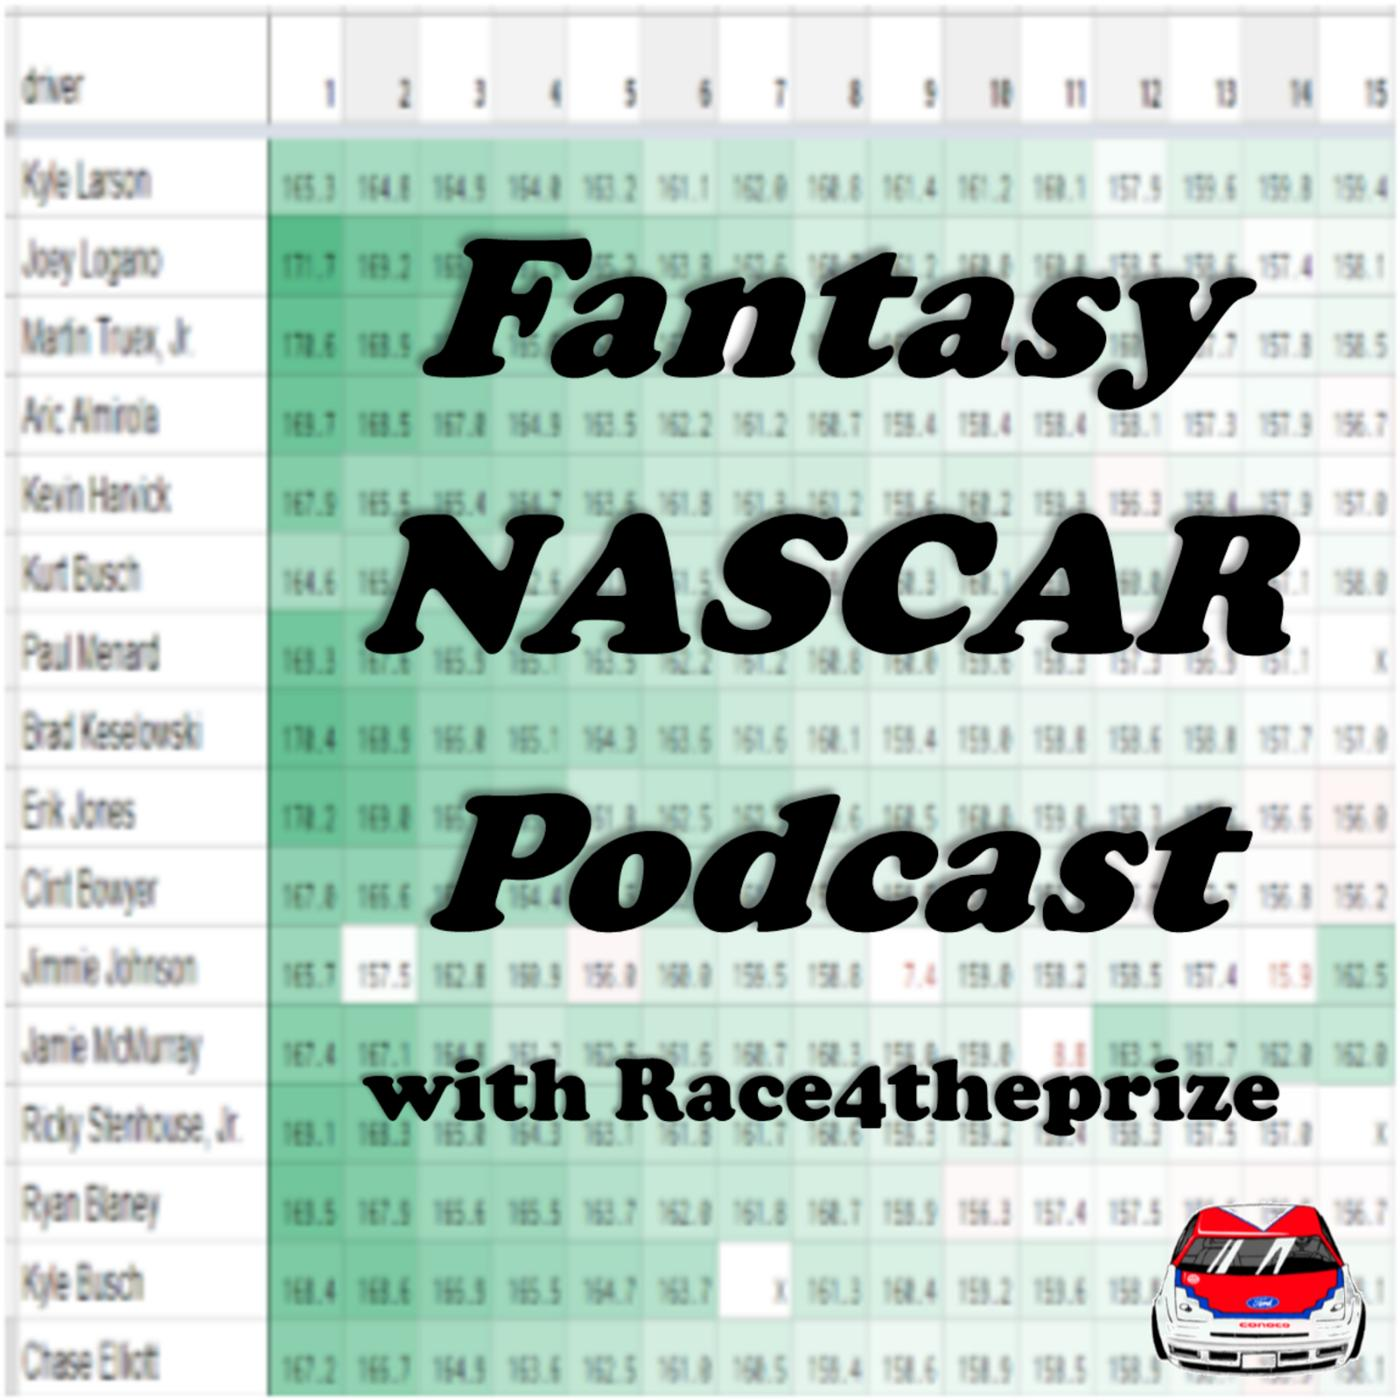 444 - Atlanta Trucks DFS NASCAR Picks - Fantasy NASCAR Podcast